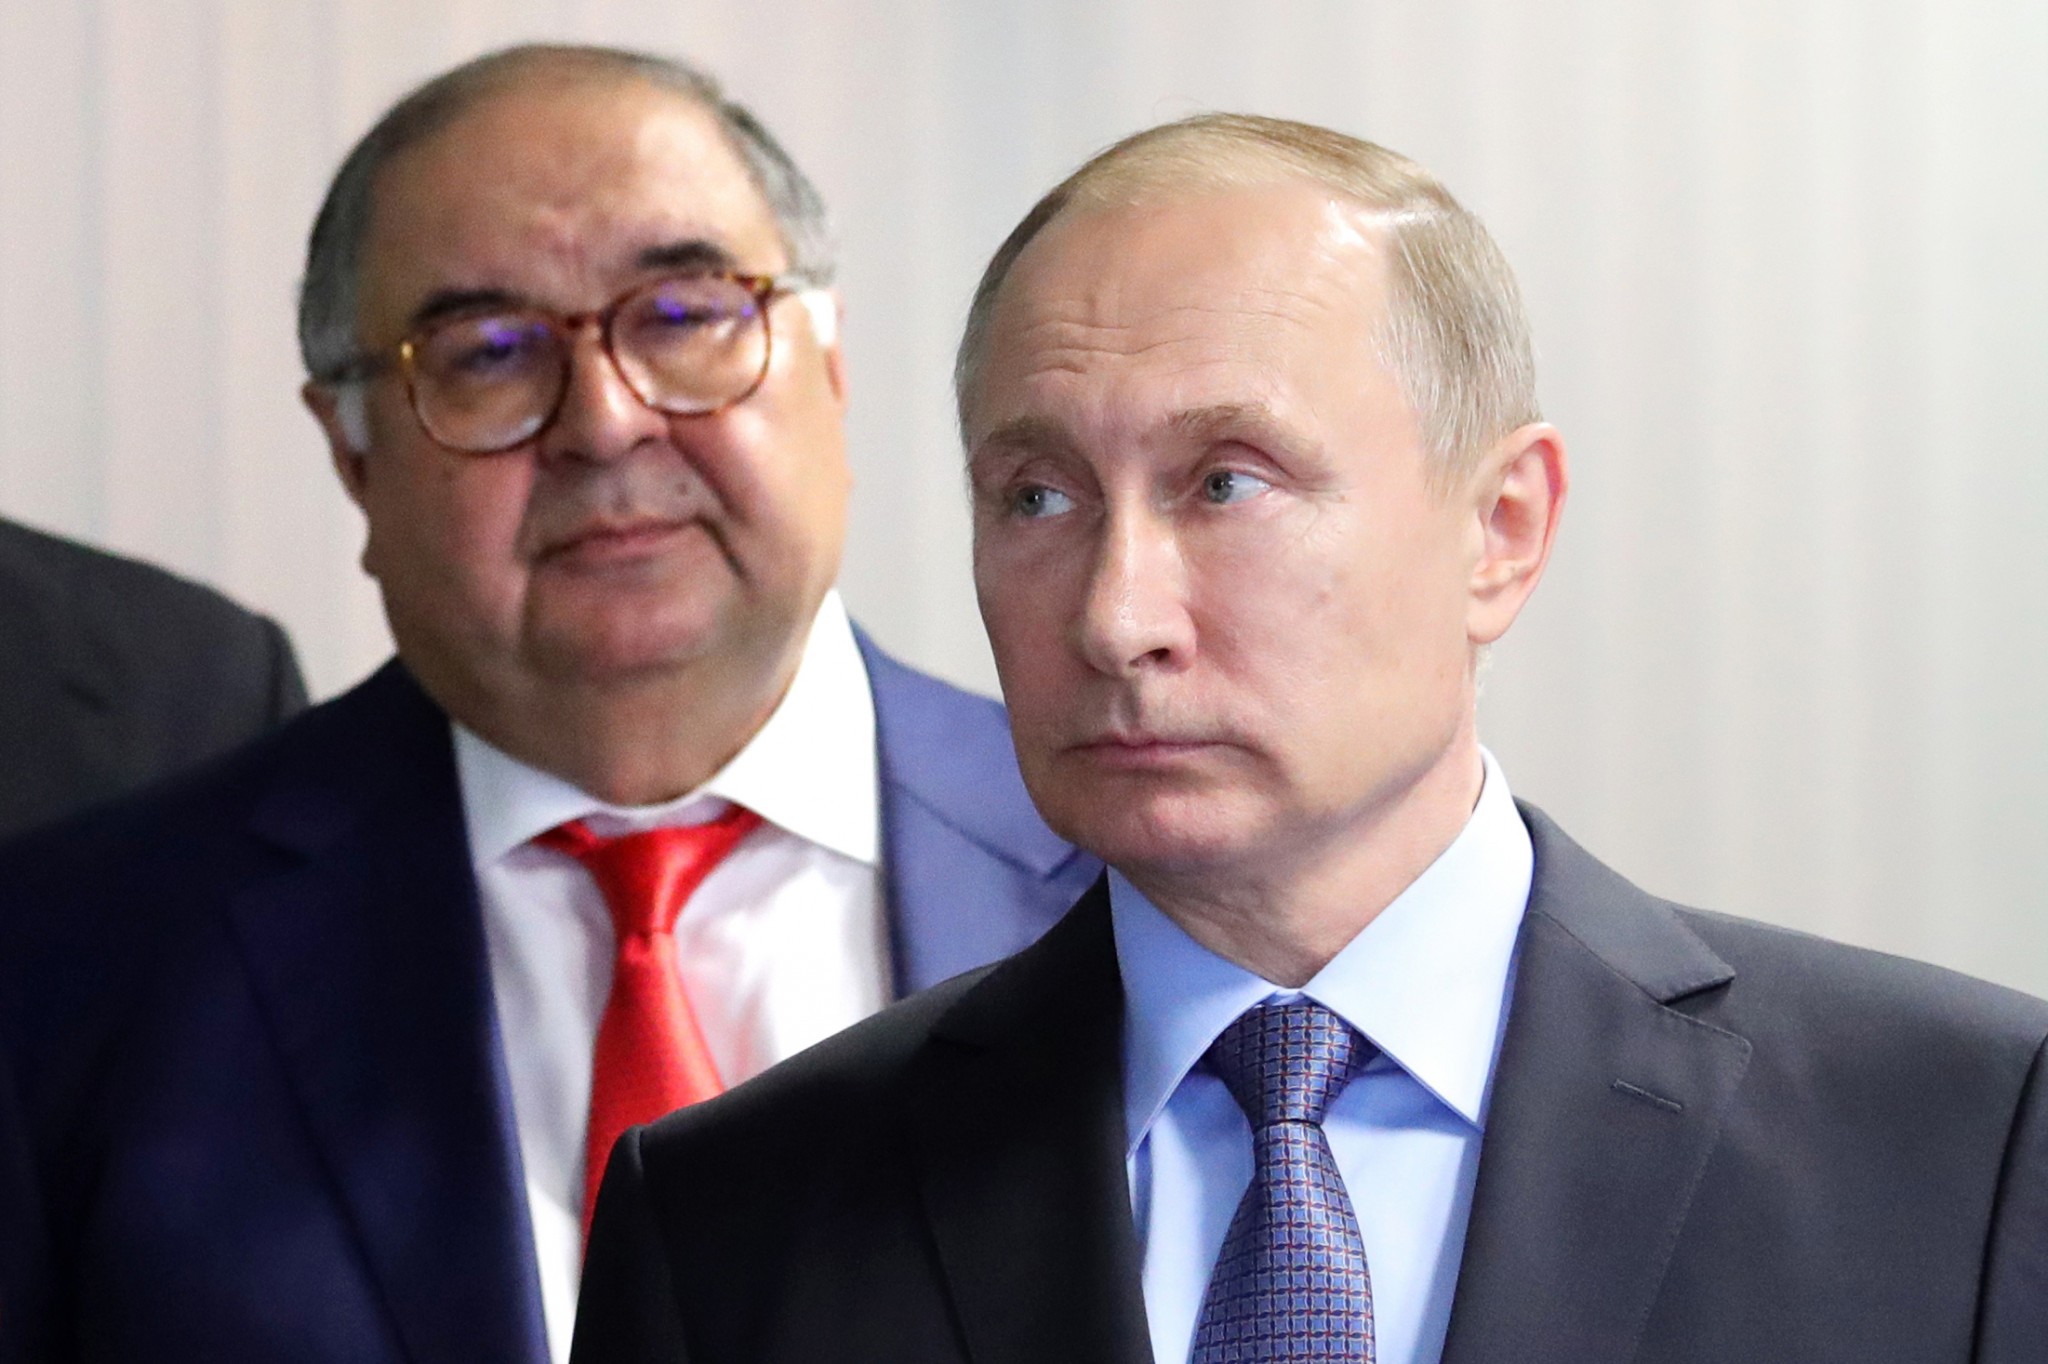 Alisher Usmanov, left, is known to be close to Russian President Vladimir Putin ©Getty Images